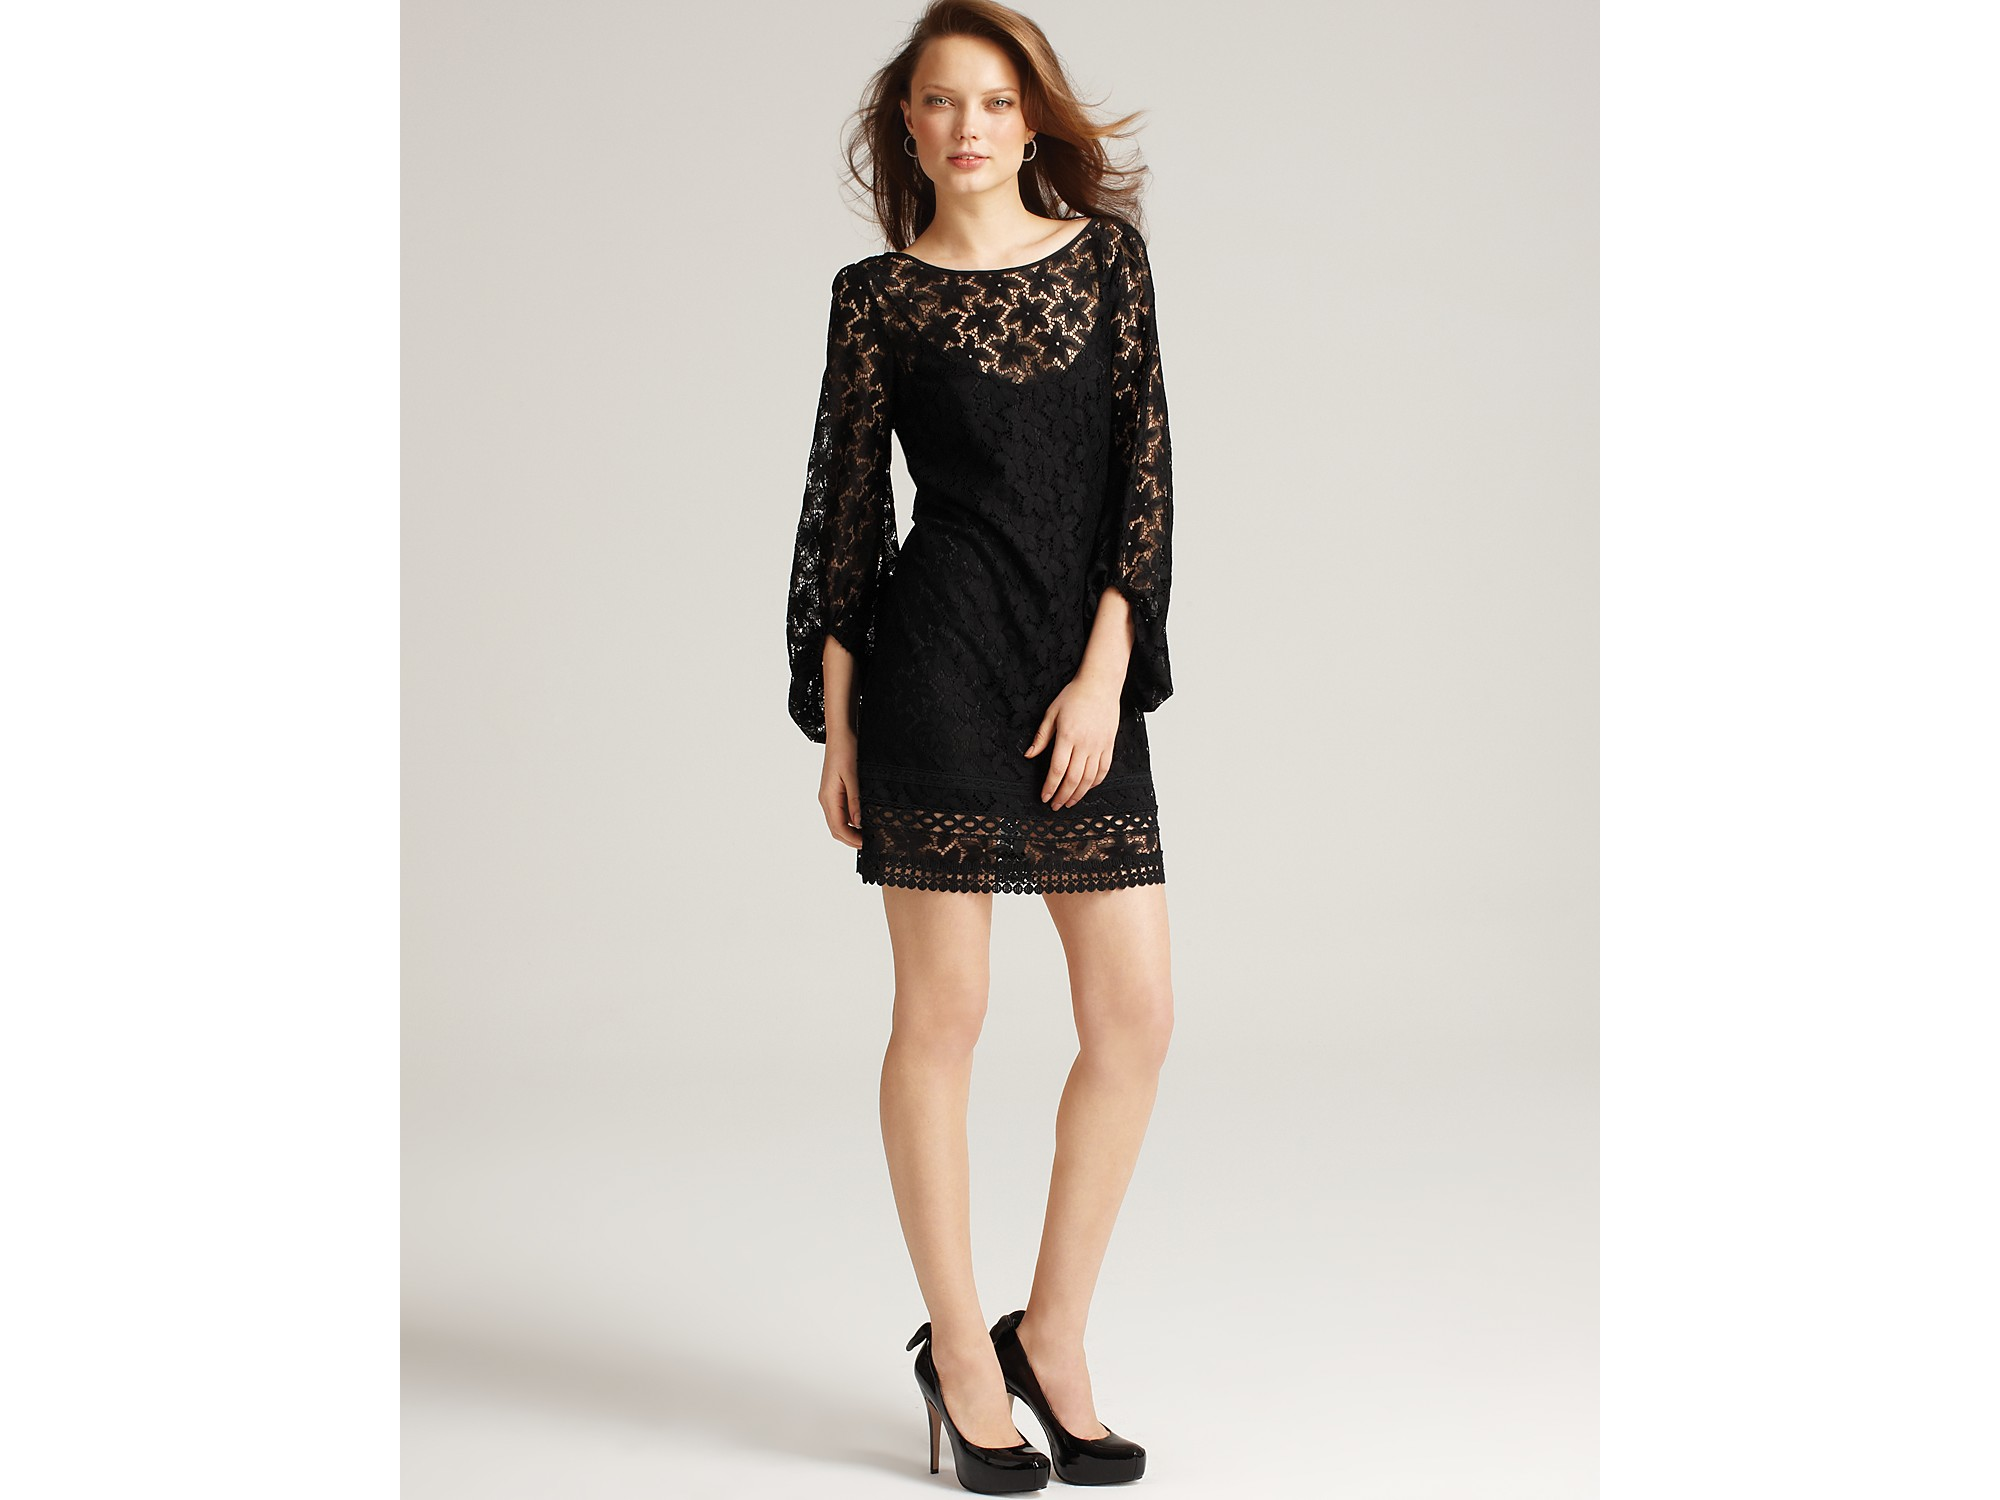 Laundry By Shelli Segal Sand Dollar Lace Dress With